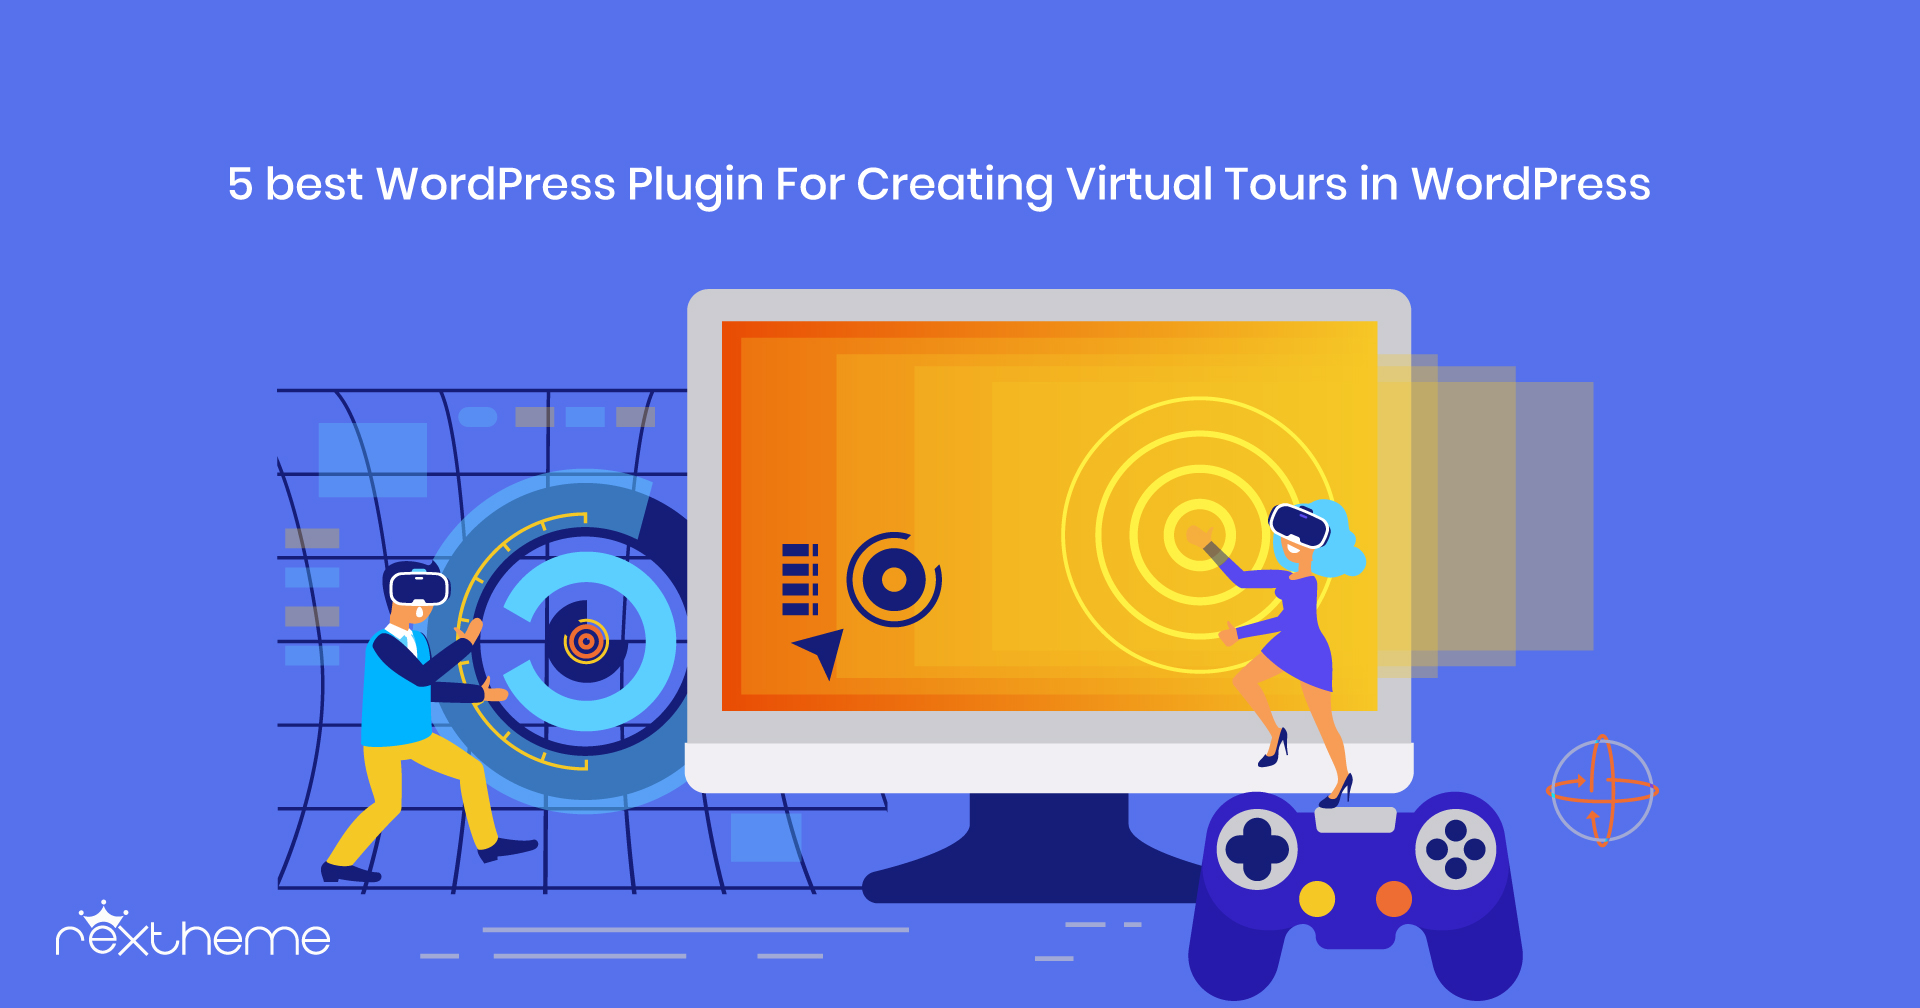 5 best plugins for Virtual Tours in WordPress